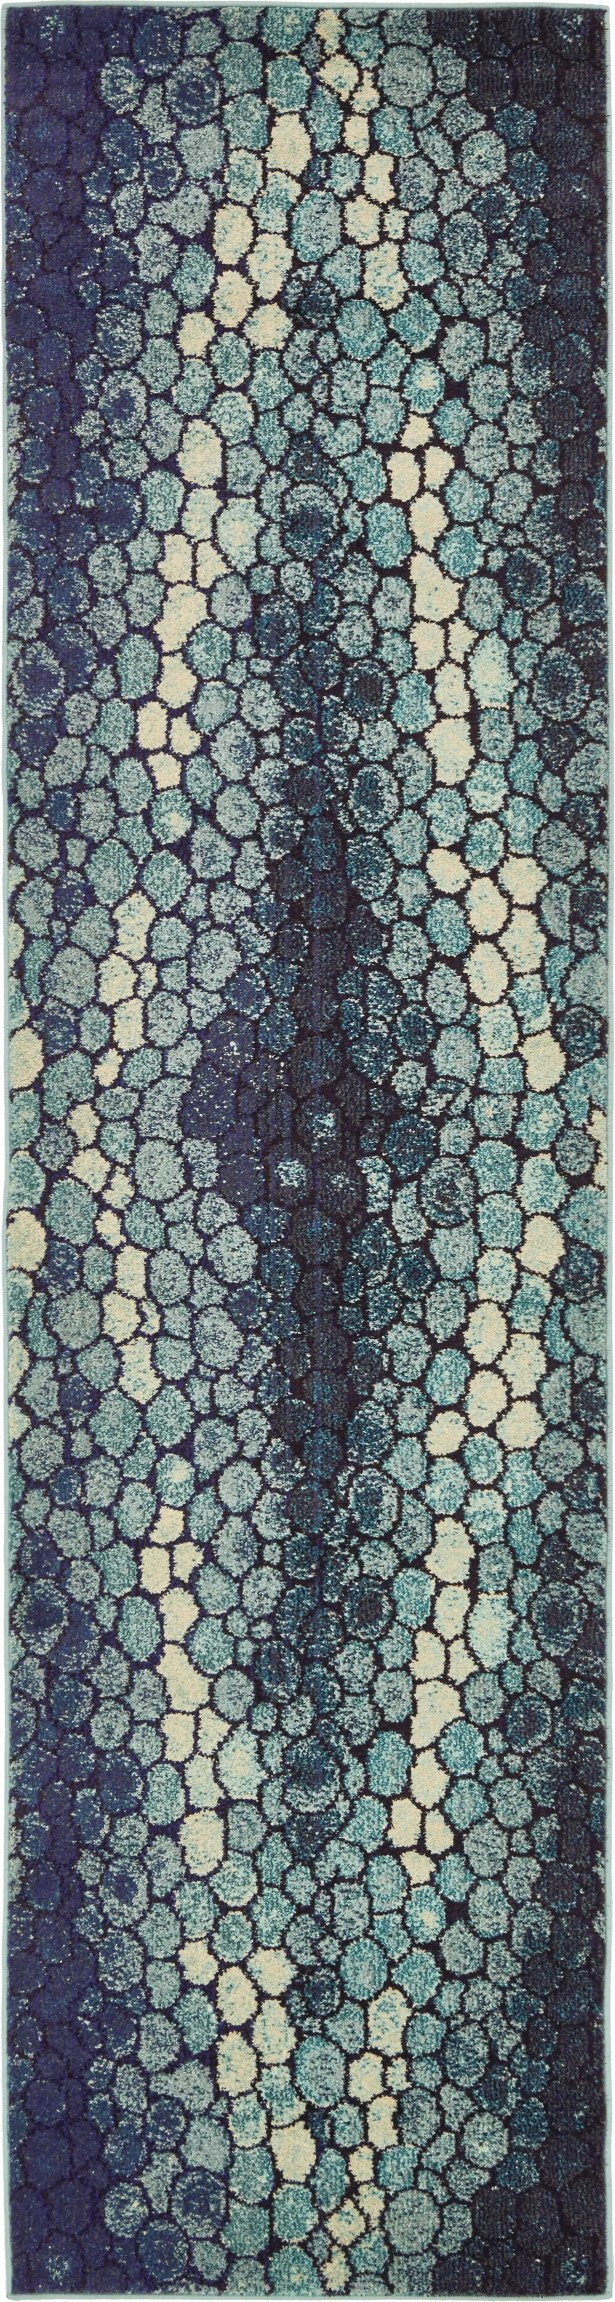 Sutton Place Blue Area Rug Rug Size: Runner 2'7